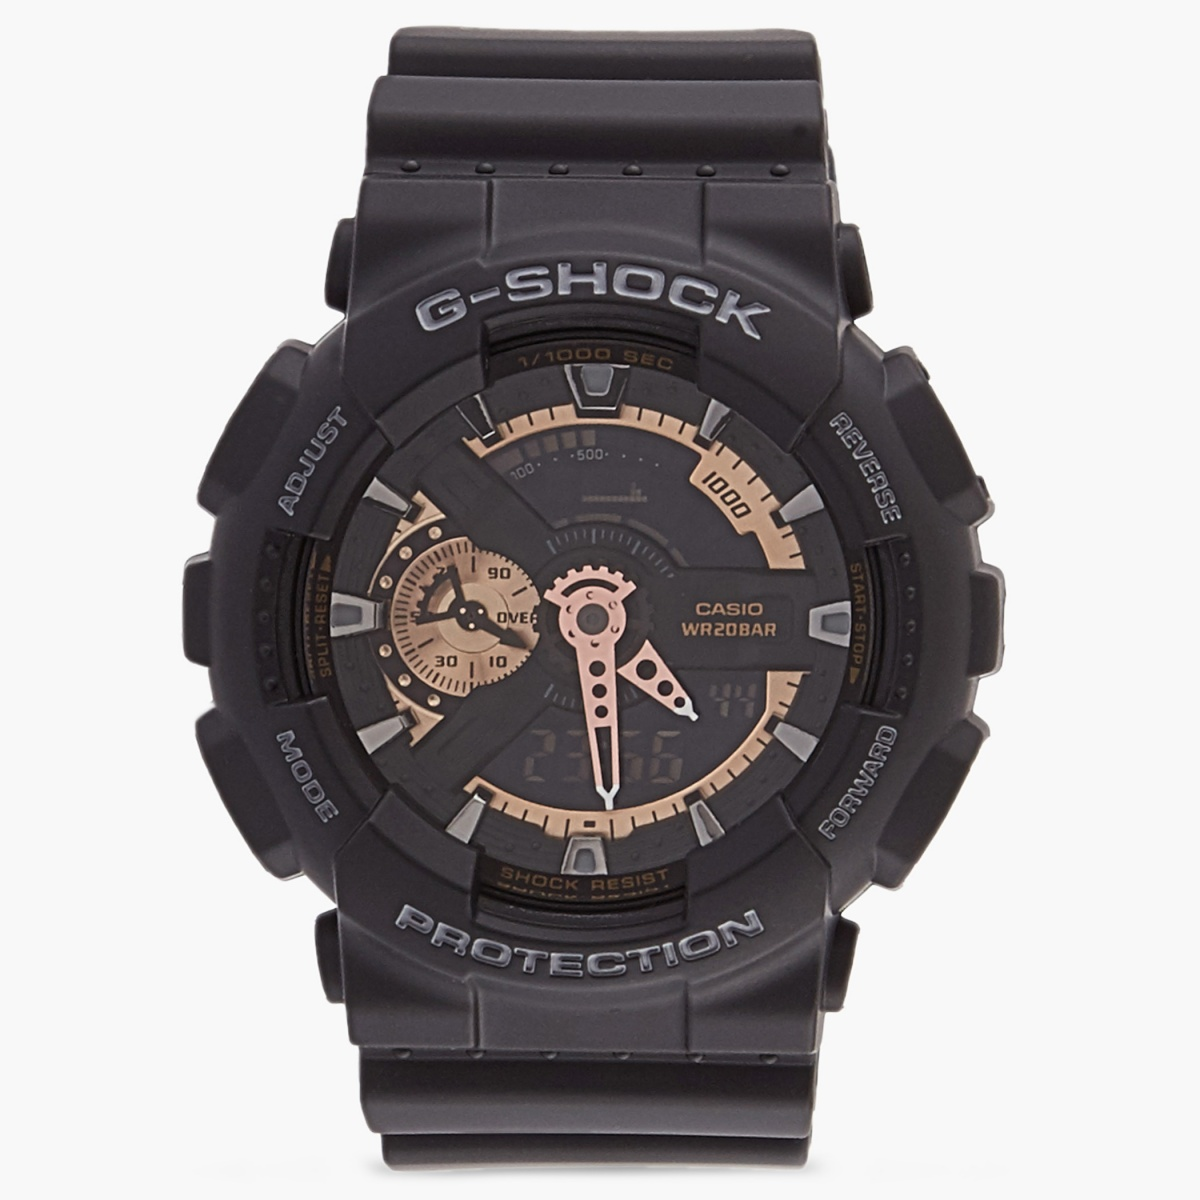 CASIO G-Shock Analog - Digital Watch G397